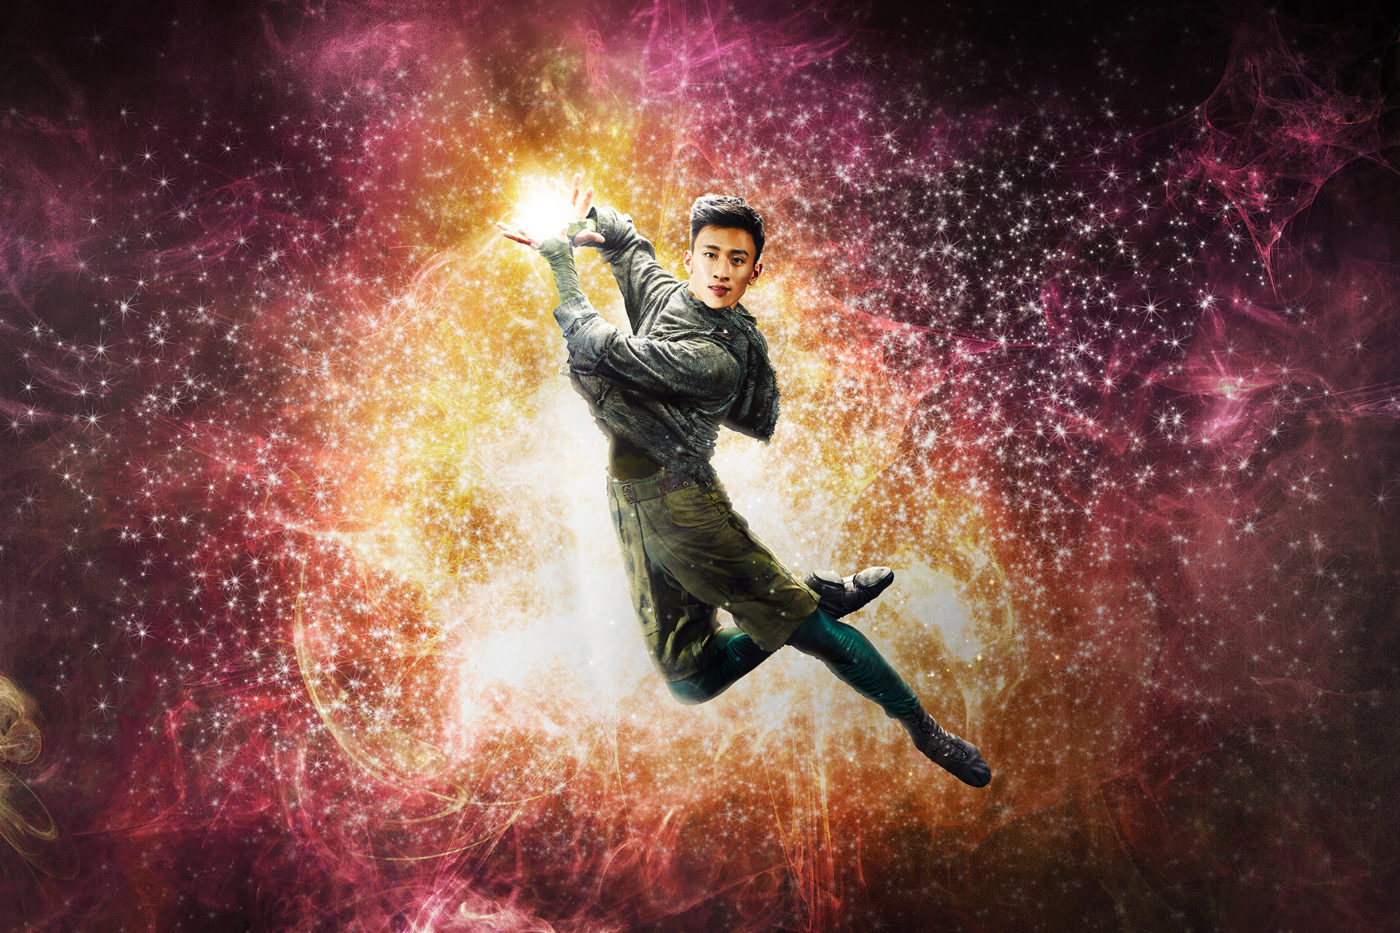 Dancer Matthew Koon as Merin, leaps up, his hands cradling a bright flash of light. Behind him is a magical swirl of stars. Across the front of the picture is the word, Merlin.